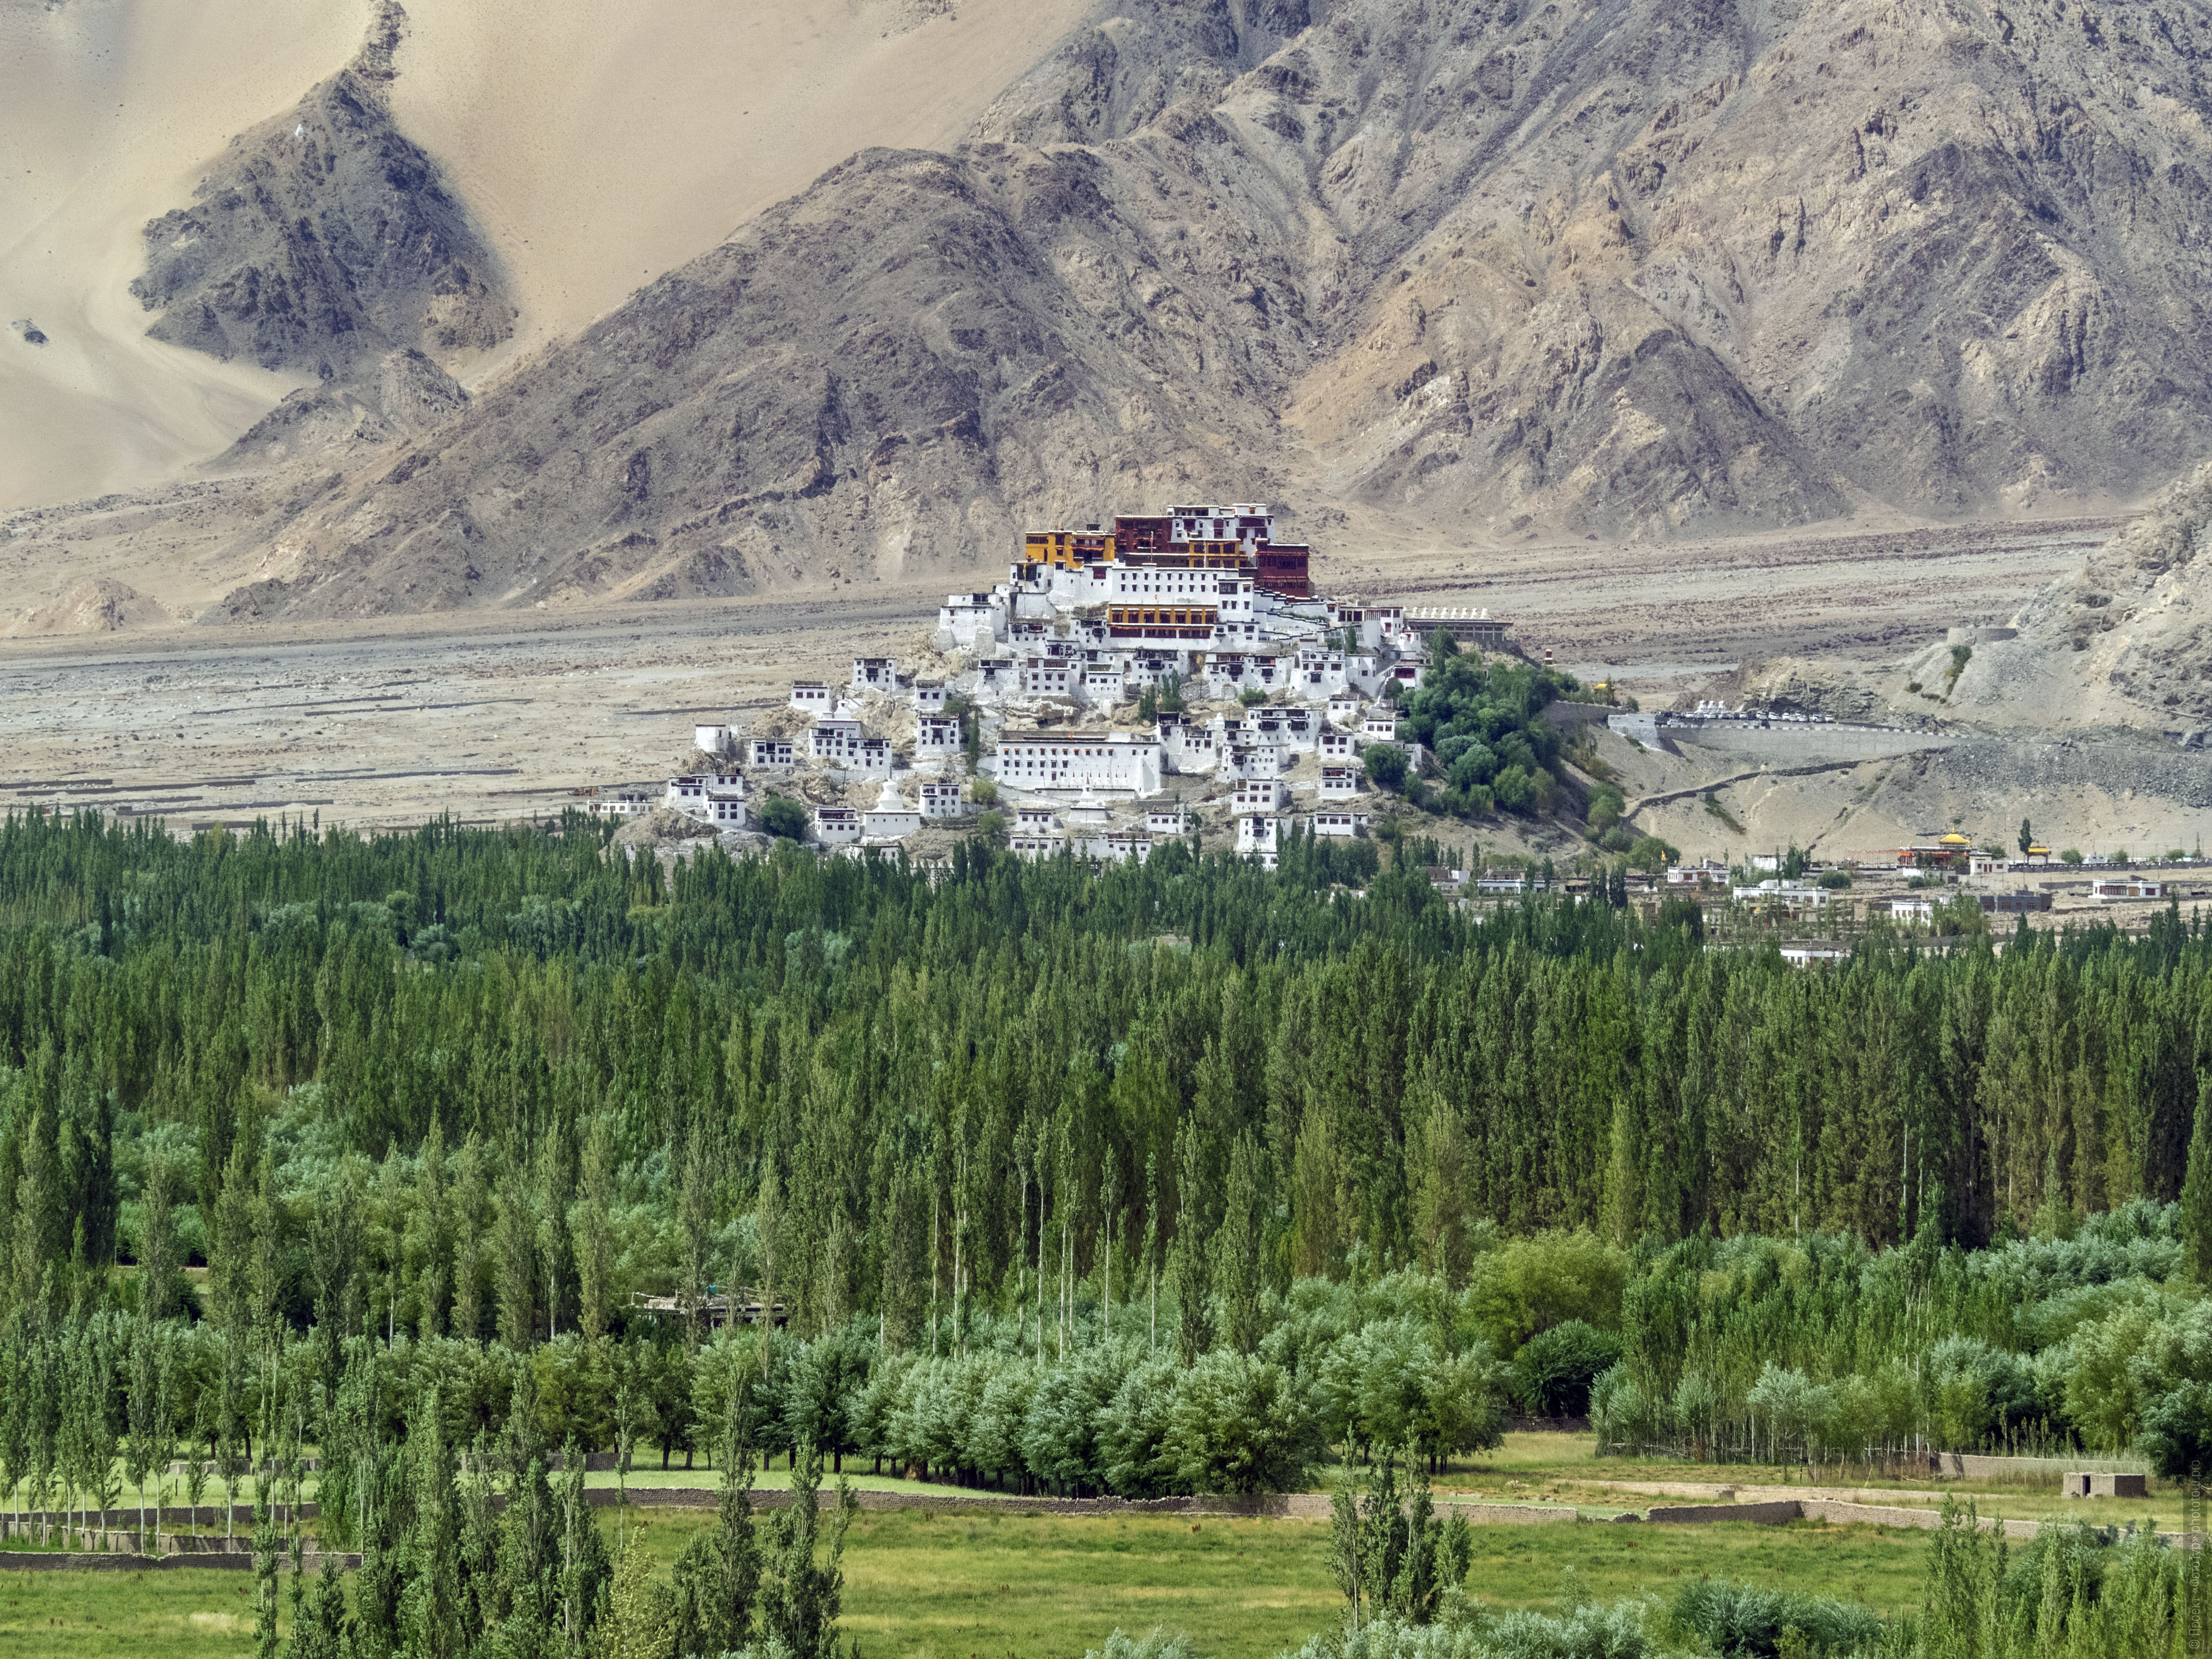 Monastery Tiksi. Ladakh Tour for women, travel and acquaintance with the culture of Tibetan matriarchy, August 31 - September 14, 2019.